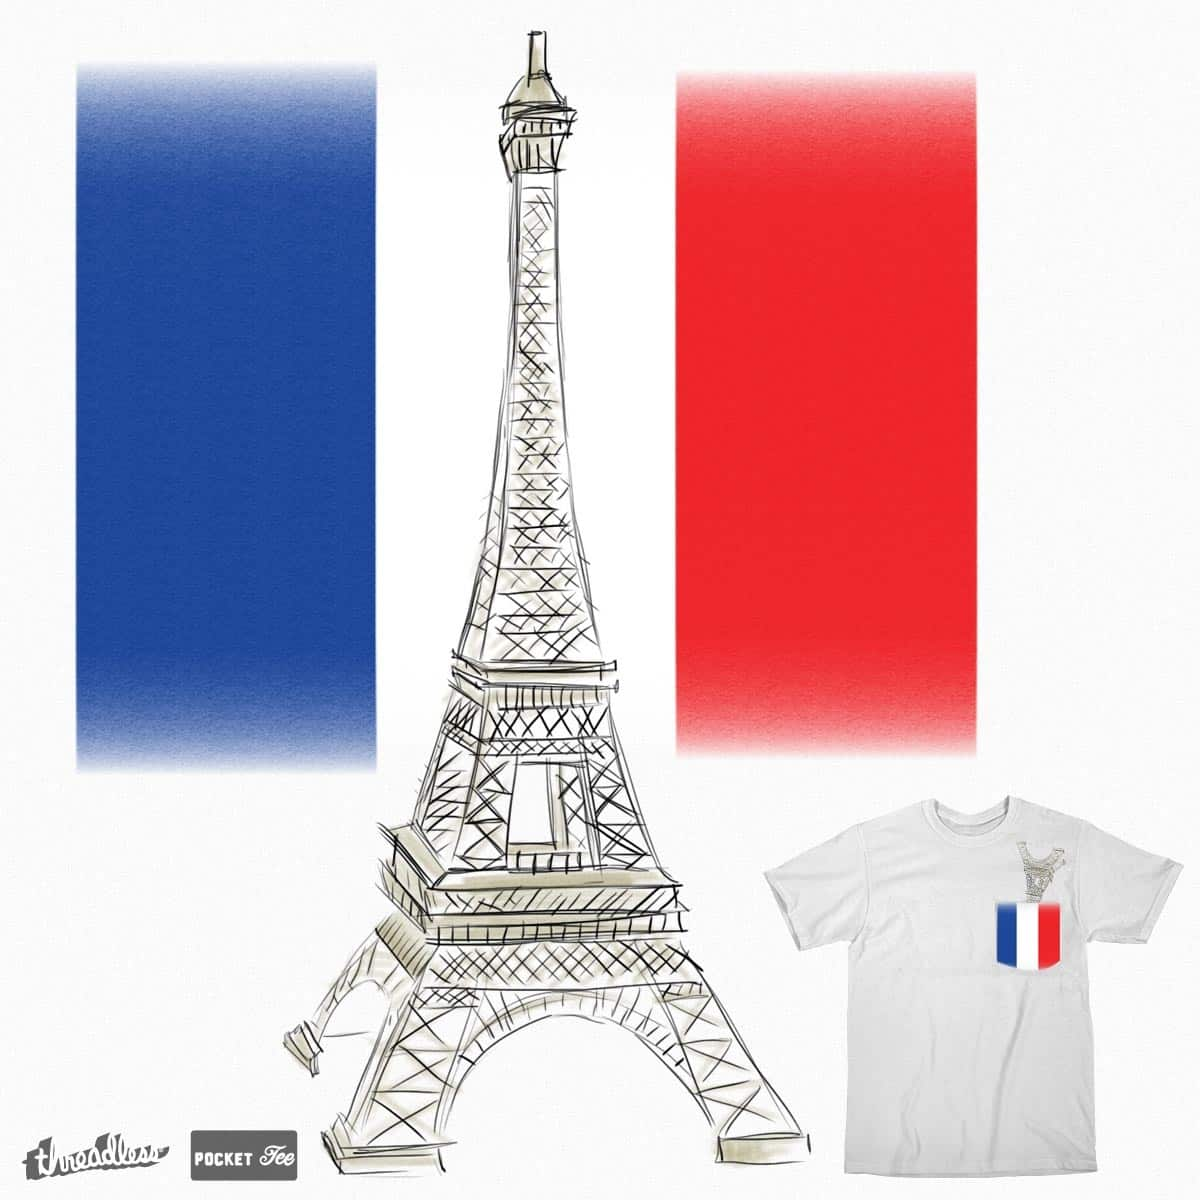 France lovers by Parin on Threadless